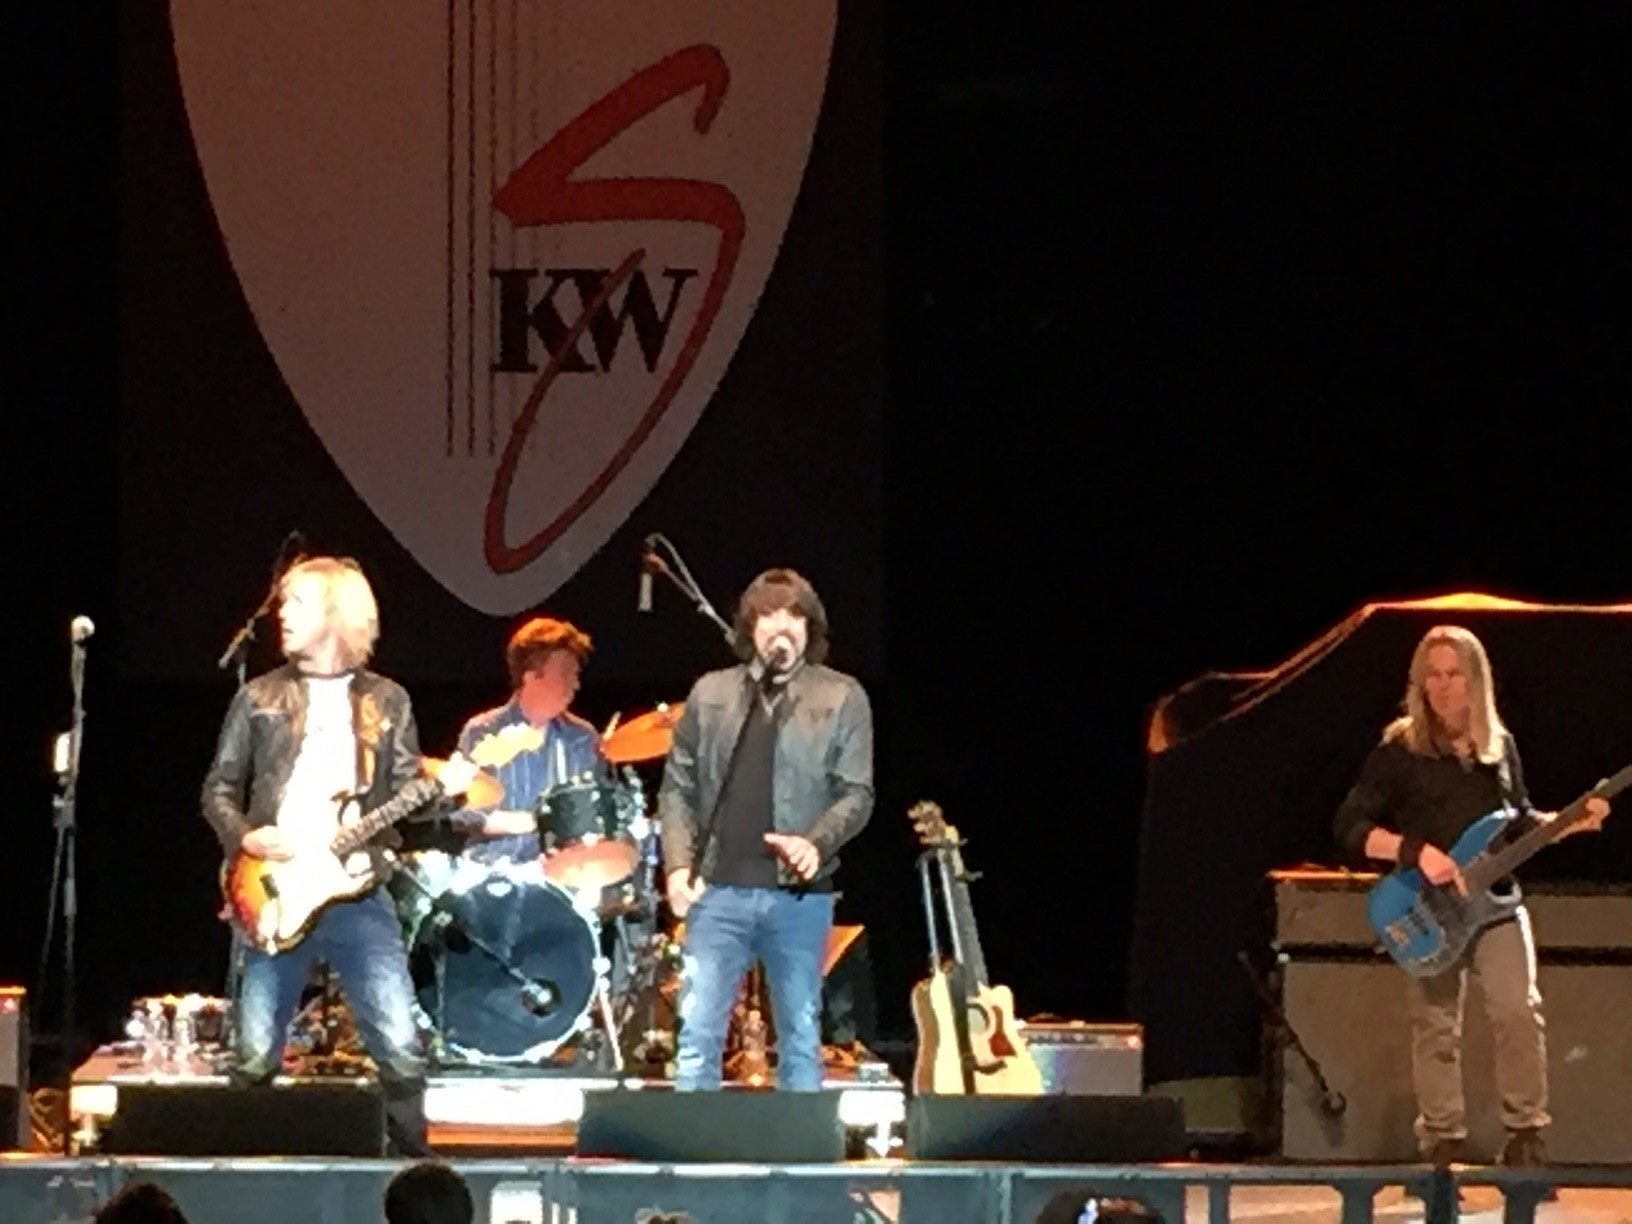 Fucking hot! Kenny wayne shepherd spank